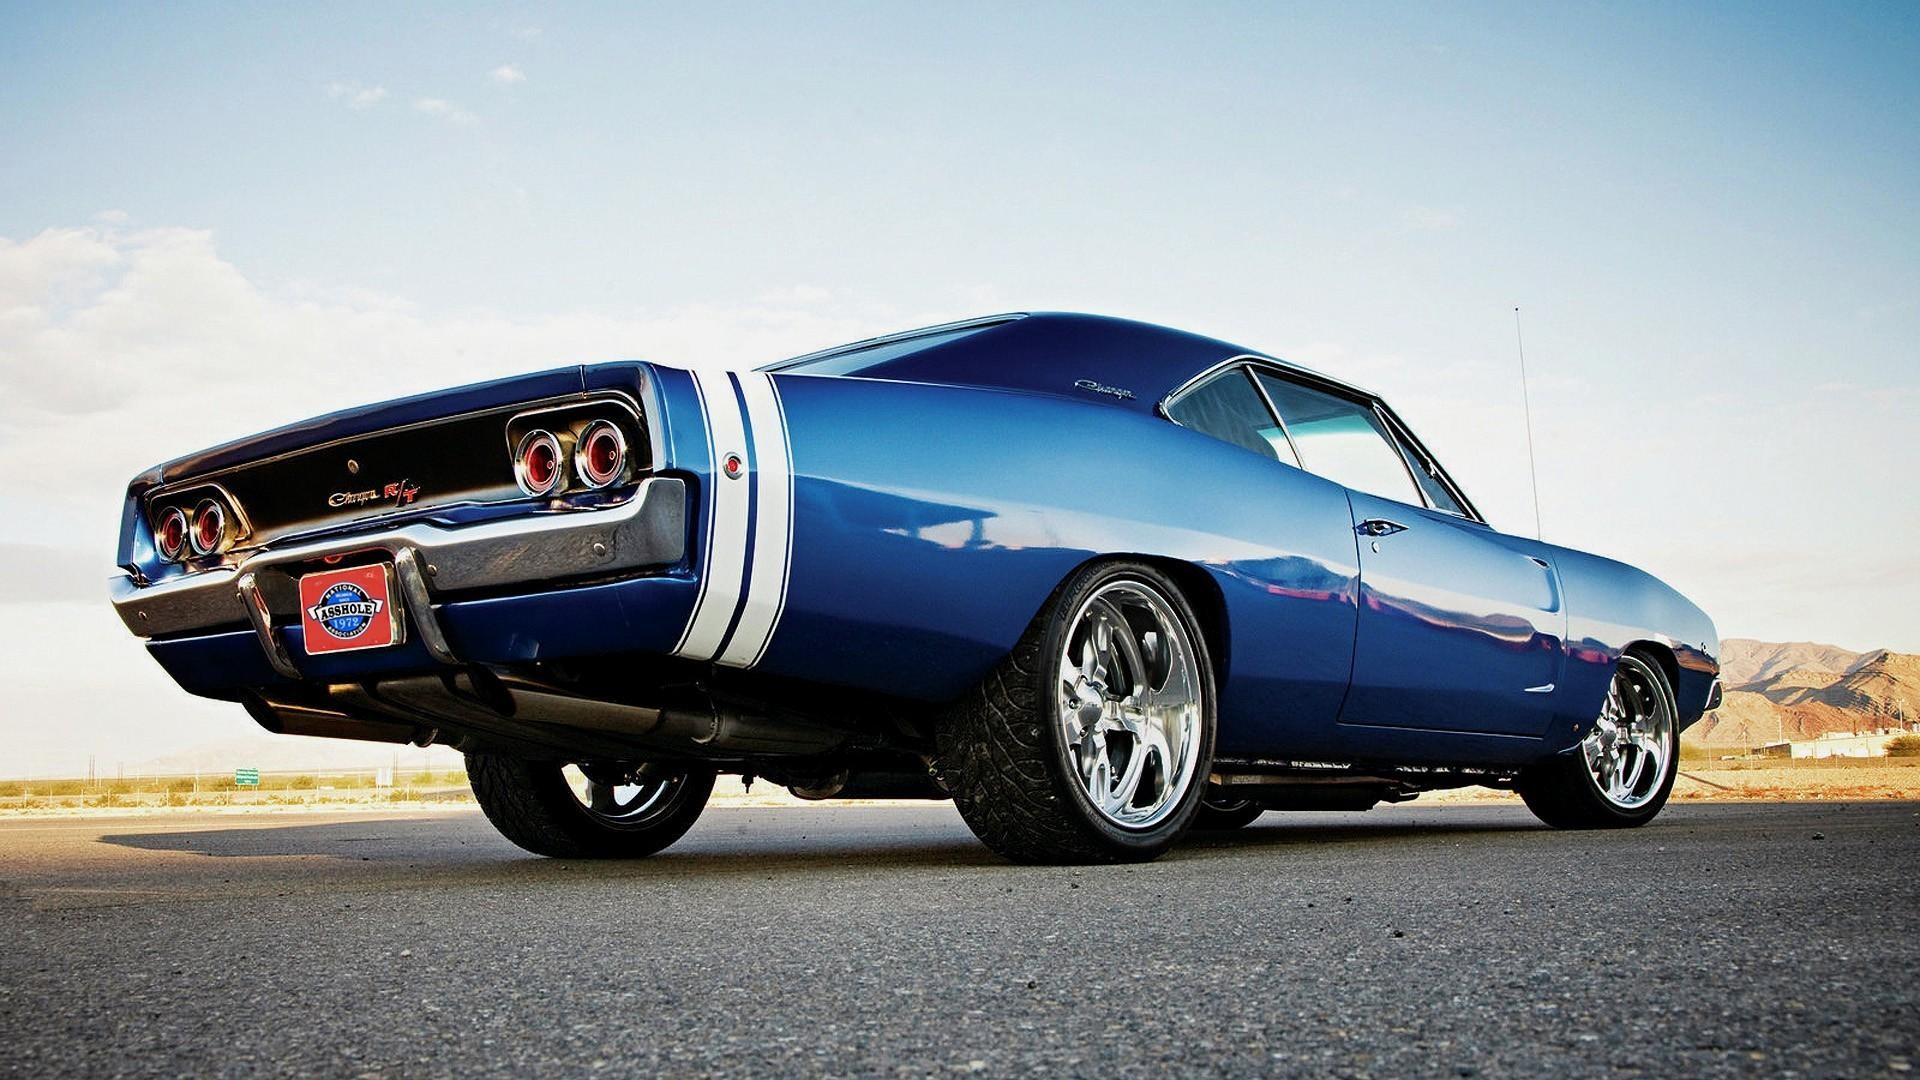 1920x1080 wallpaper.wiki-Blue-1970-Dodge-Charger-Background-Free-